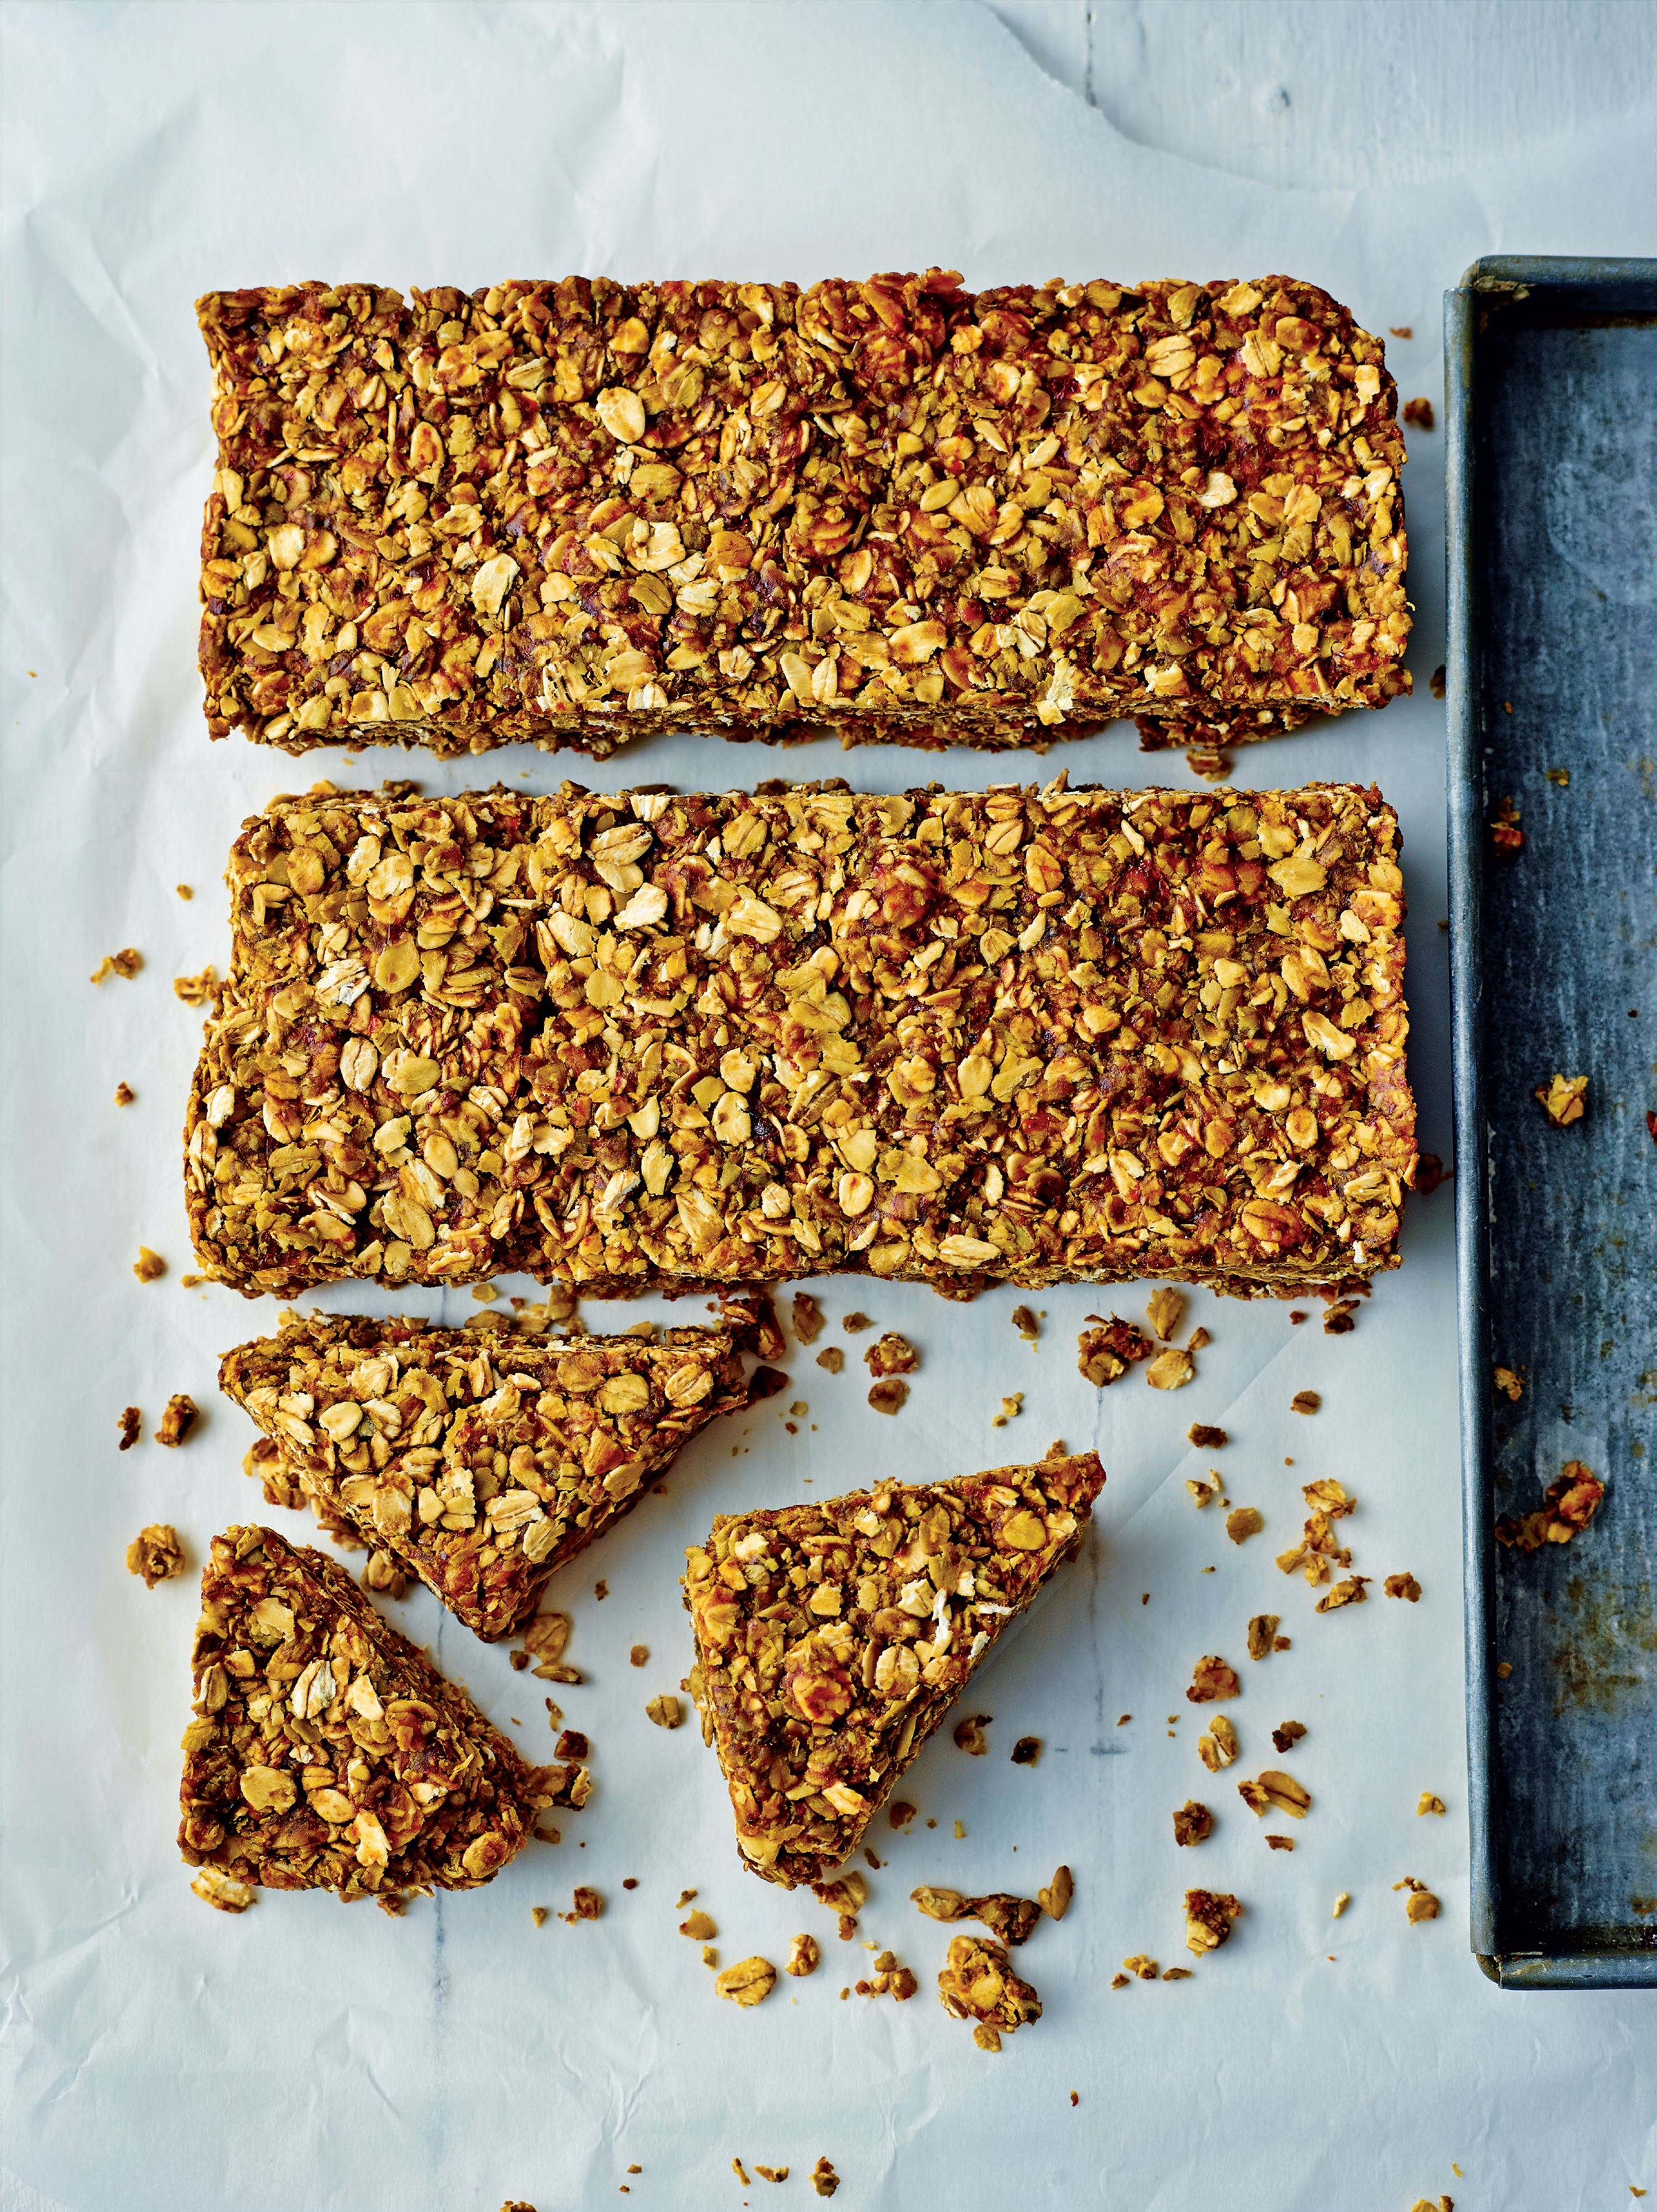 Date and green tea oat bars